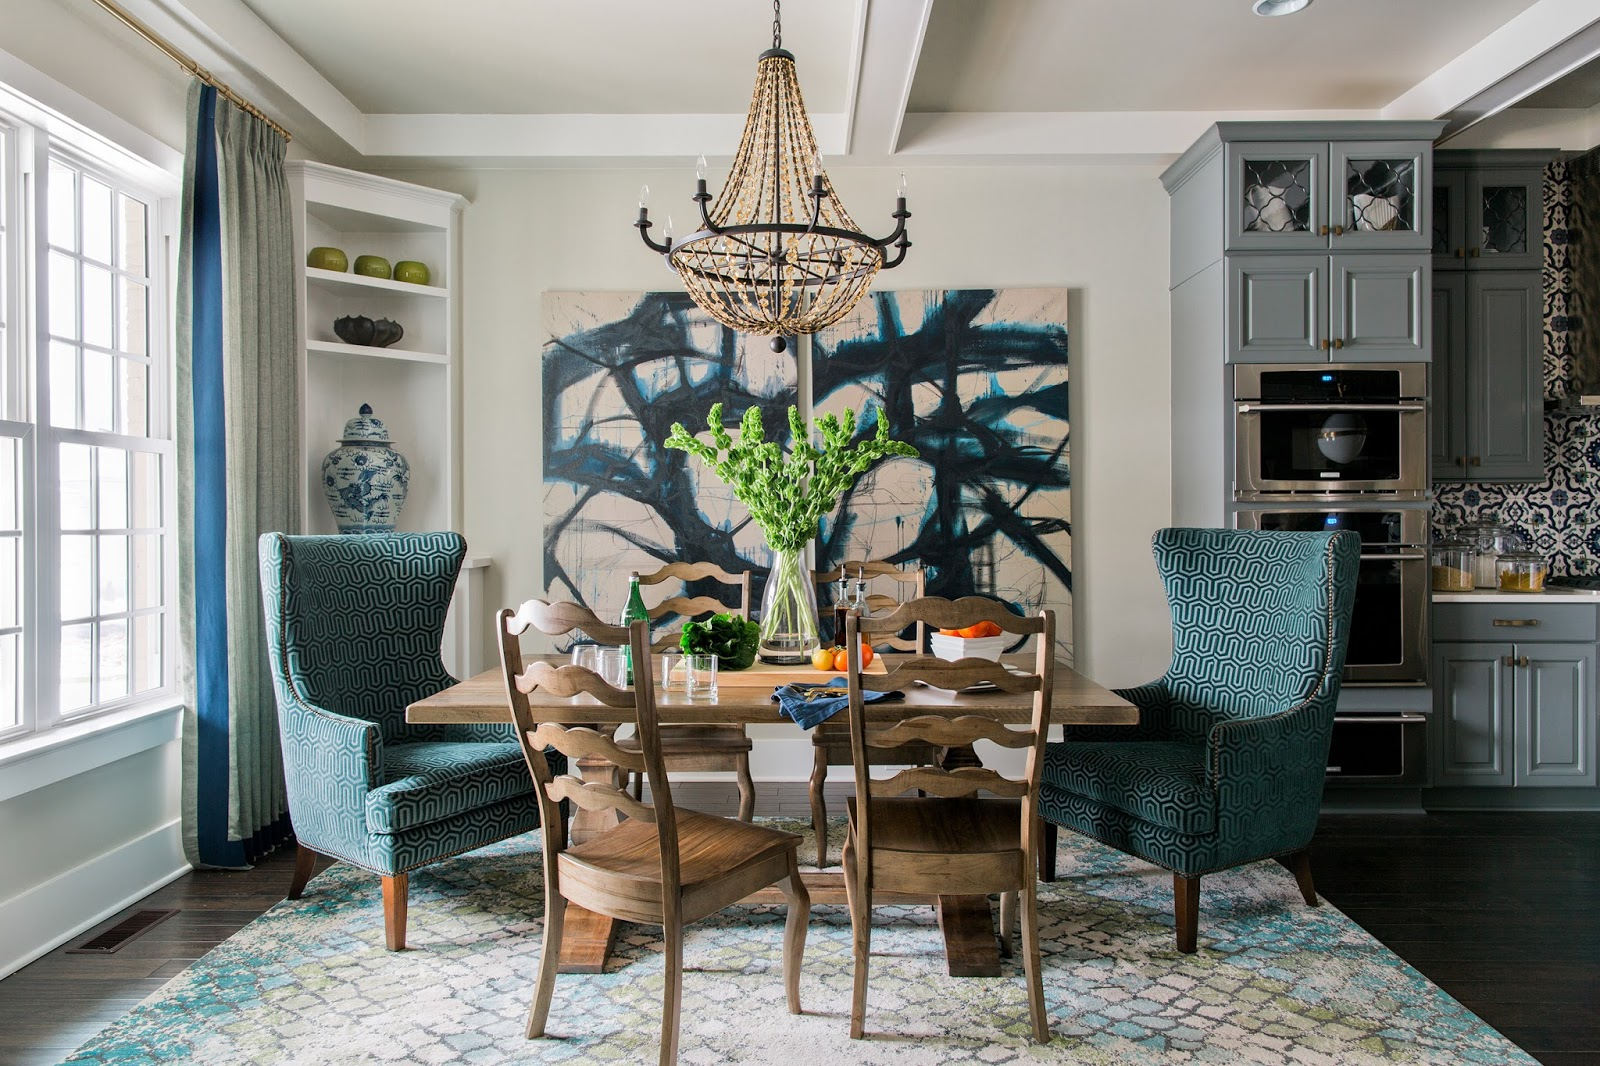 Hines sight blog raleigh nc is home to new hgtv smart home for Dining room decor 2016